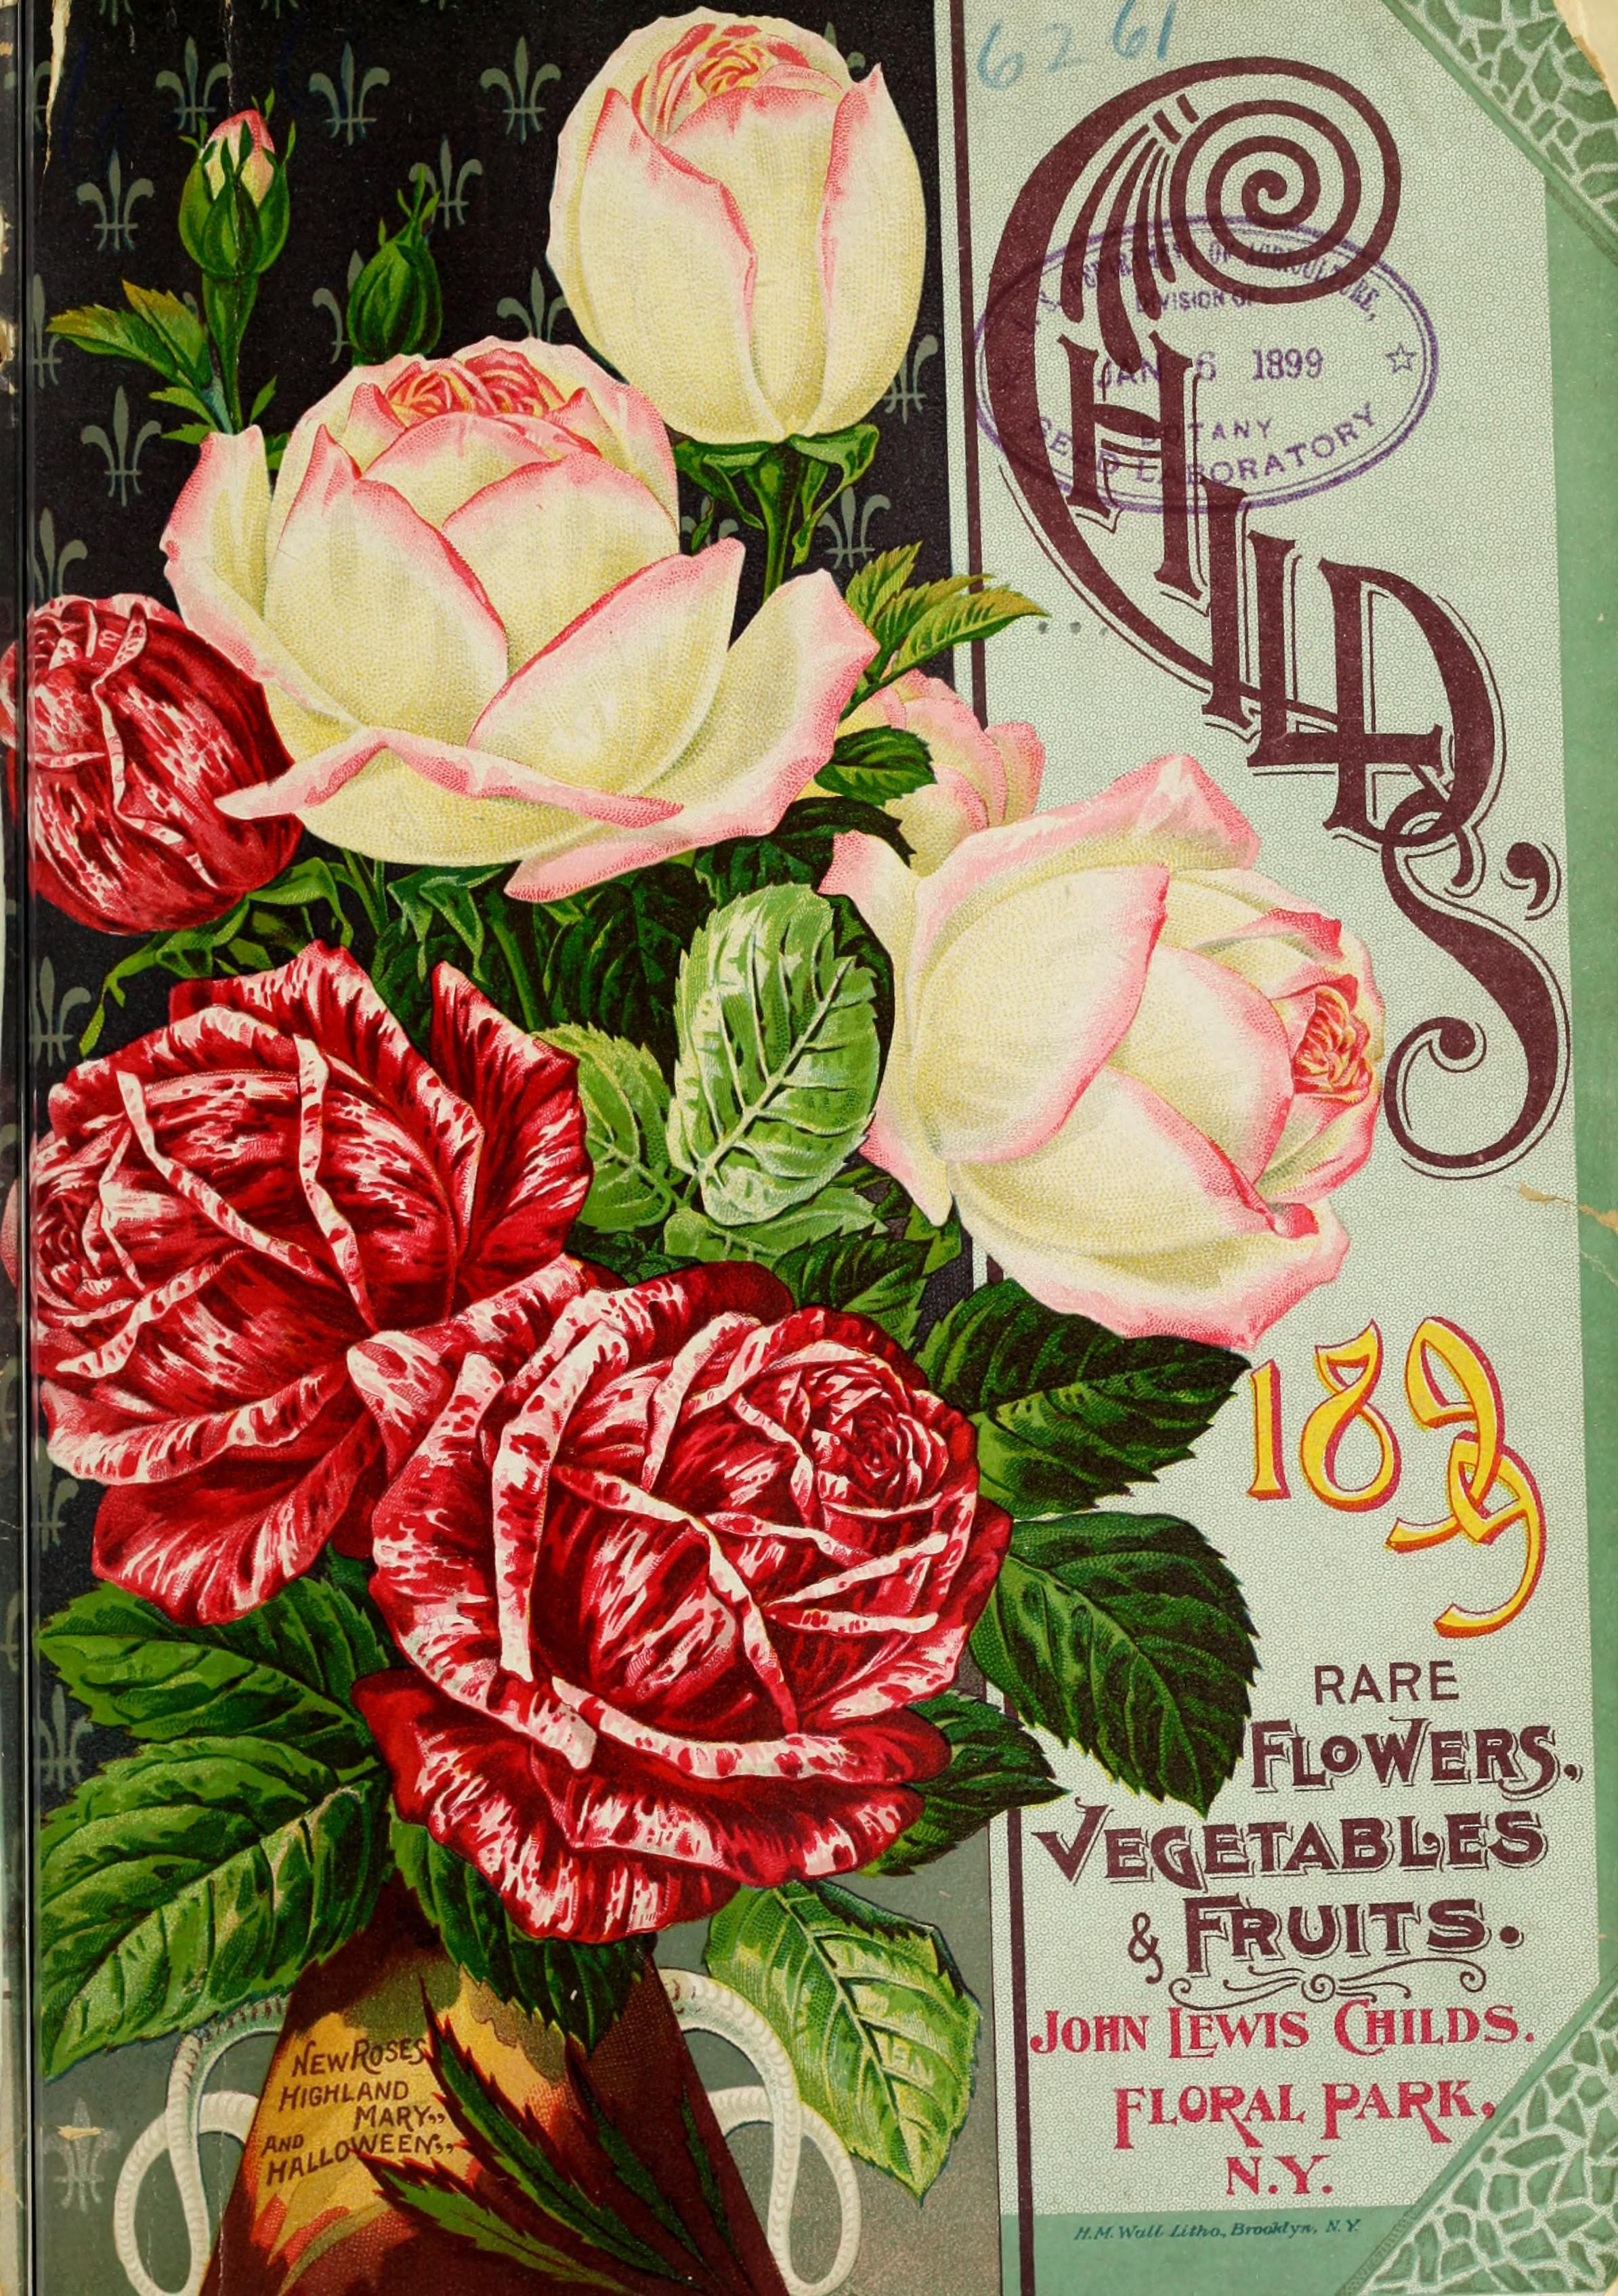 1899 Childs' rare flowers, vegetables, & fruits